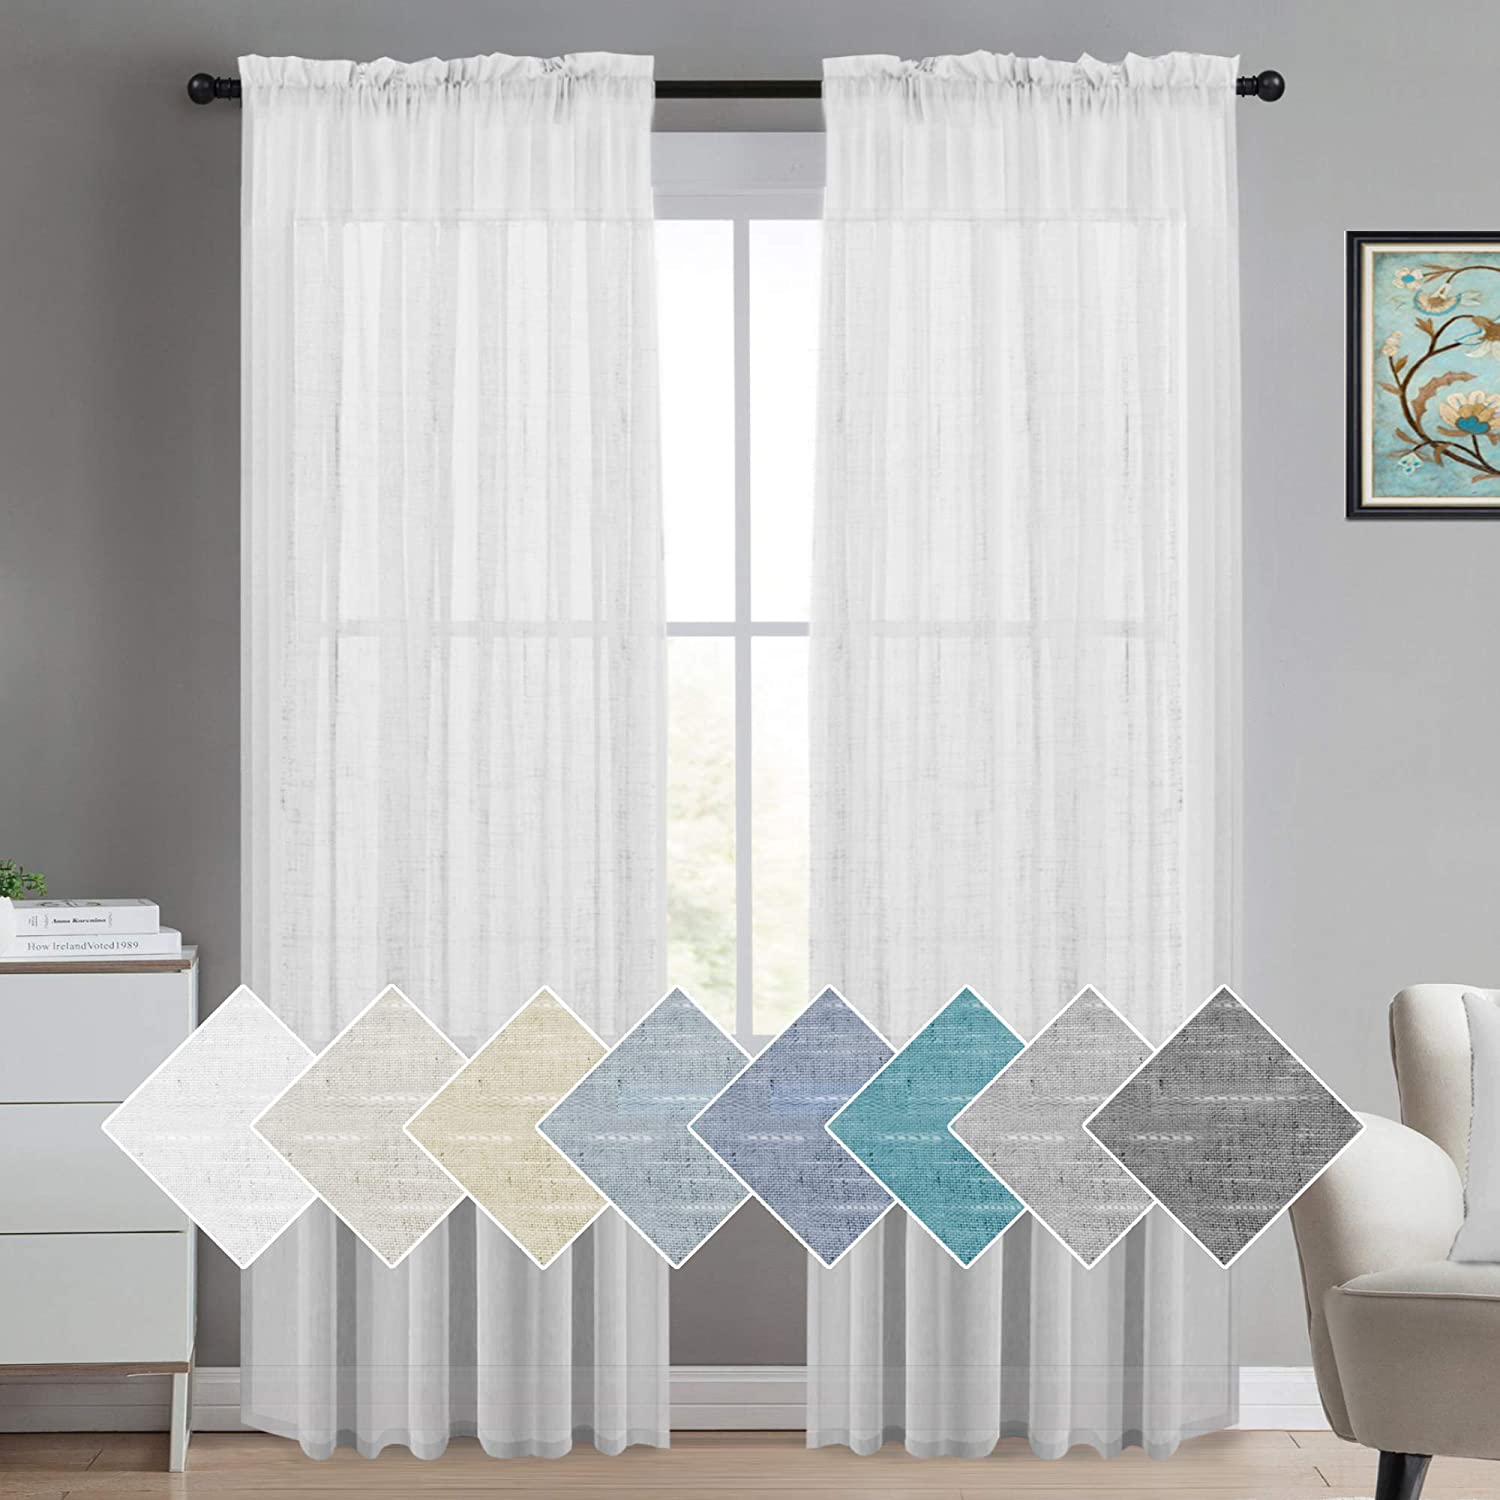 Sheer Linen Curtains 84 Inches White Linen Curtain Panels Natural Linen Blended Sheer Curtains Rod Pocket Sheer Curtains for Living Room, Light Filtering Linen Sheer Curtains (2 Panels, White)